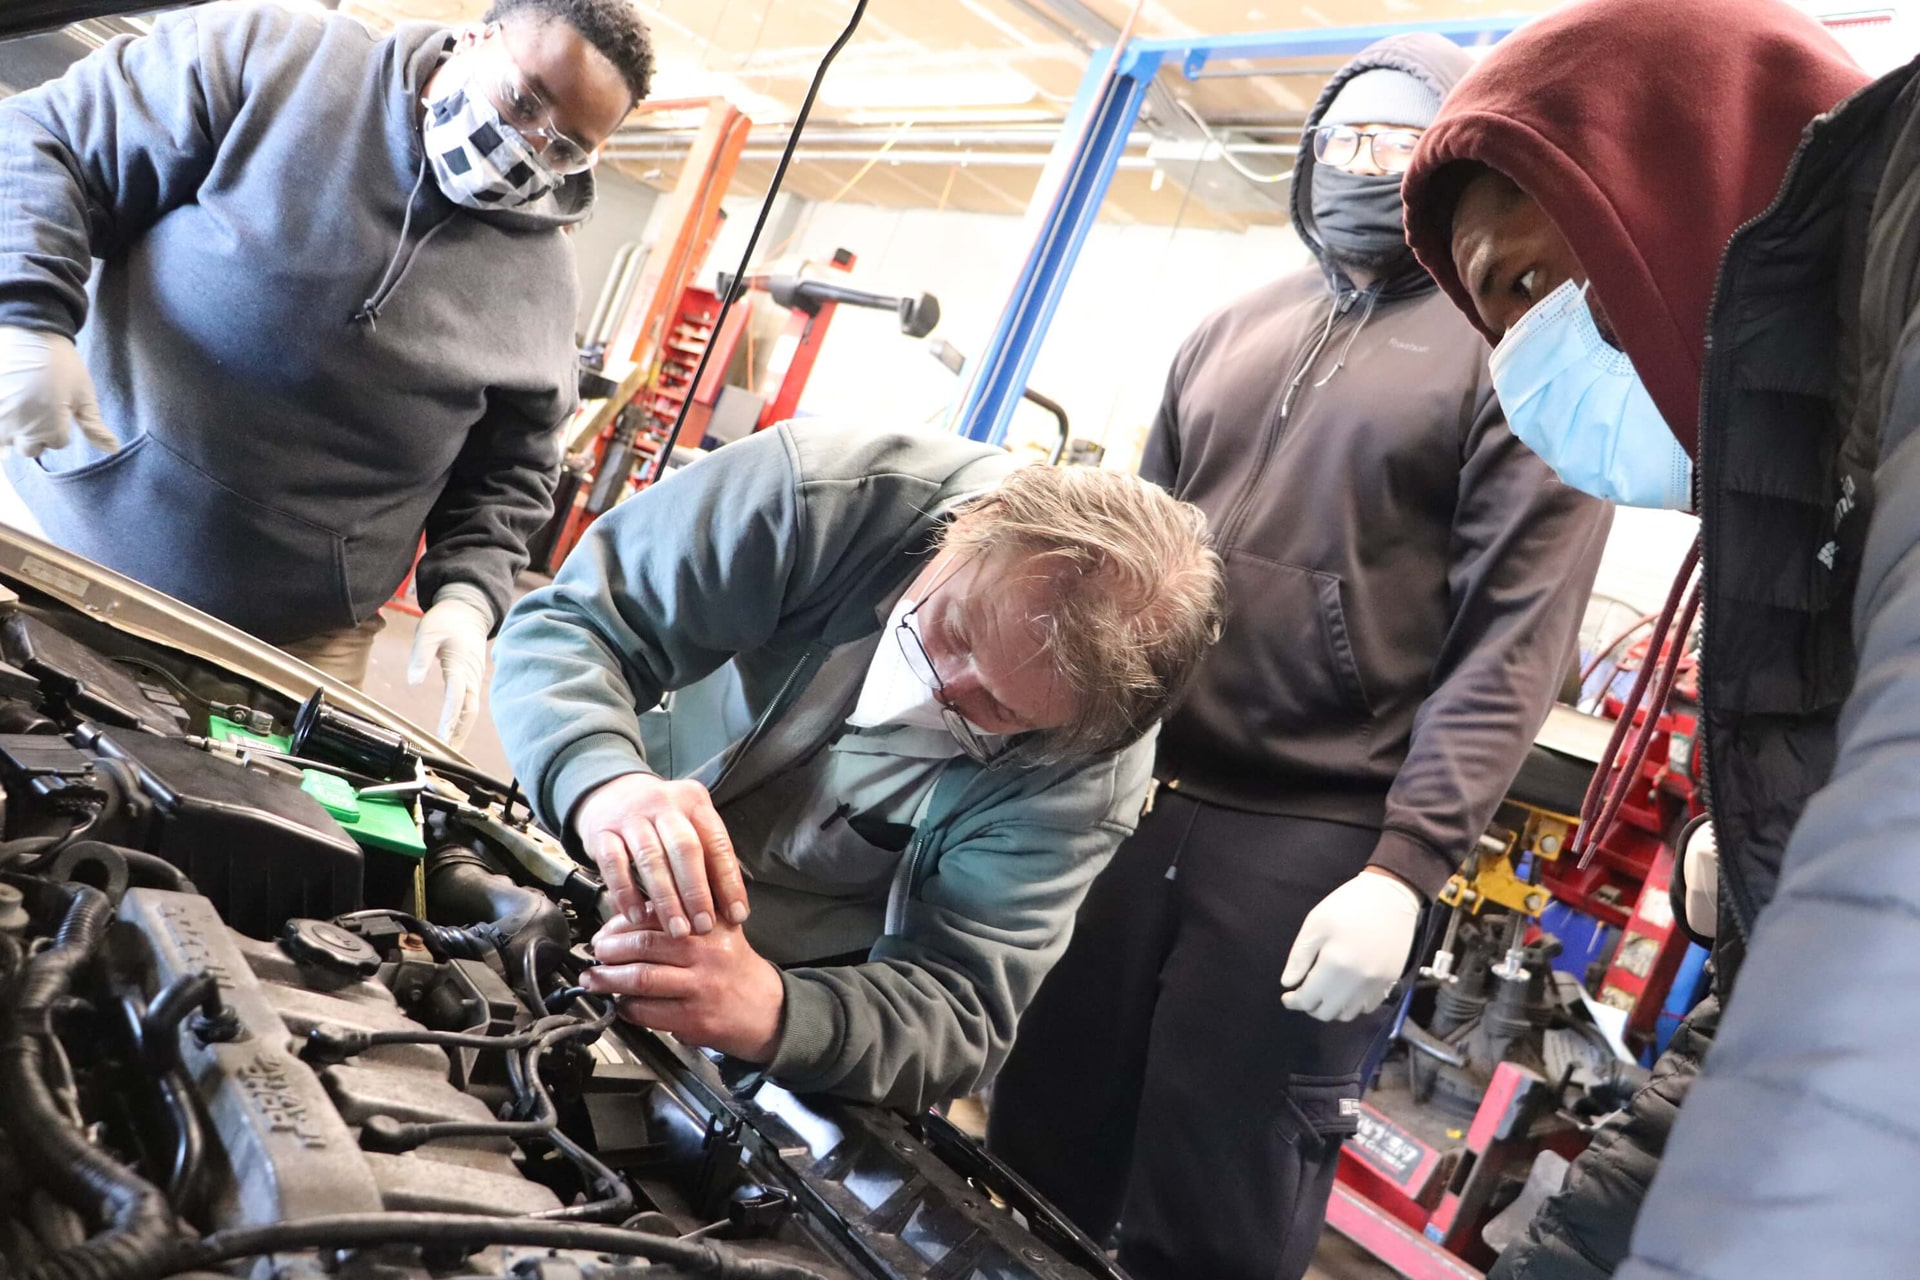 The Automotive Technician Shortage: What Does This Mean For Your Career?